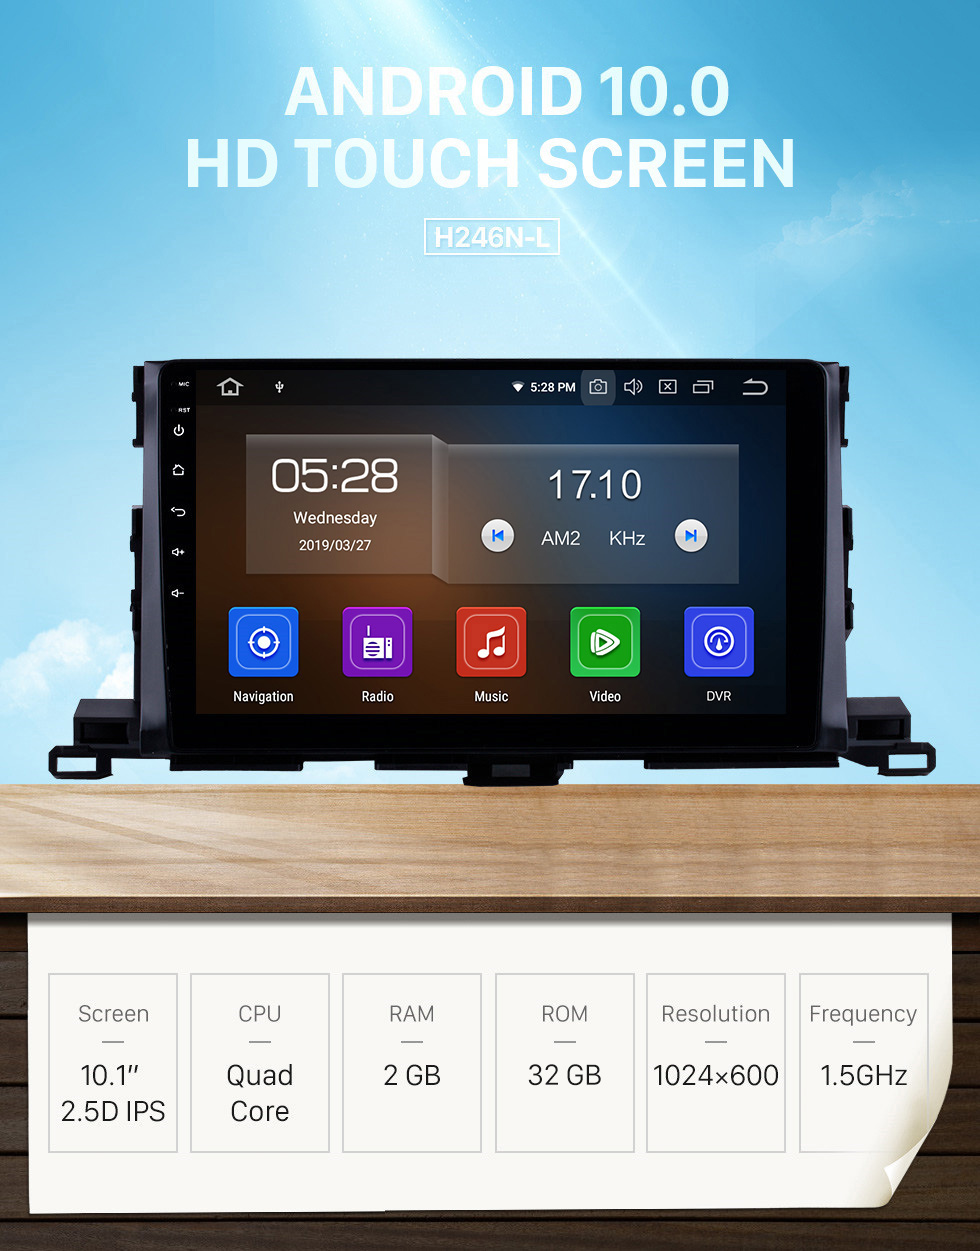 Seicane 10.1 Inch Android 10.0 GPS Navigation System For 2015 Toyota Highlander Bluetooth Touch Screen Radio support TPMS DVR OBD Mirror Link Backup Camera TV Video 3G WiFi